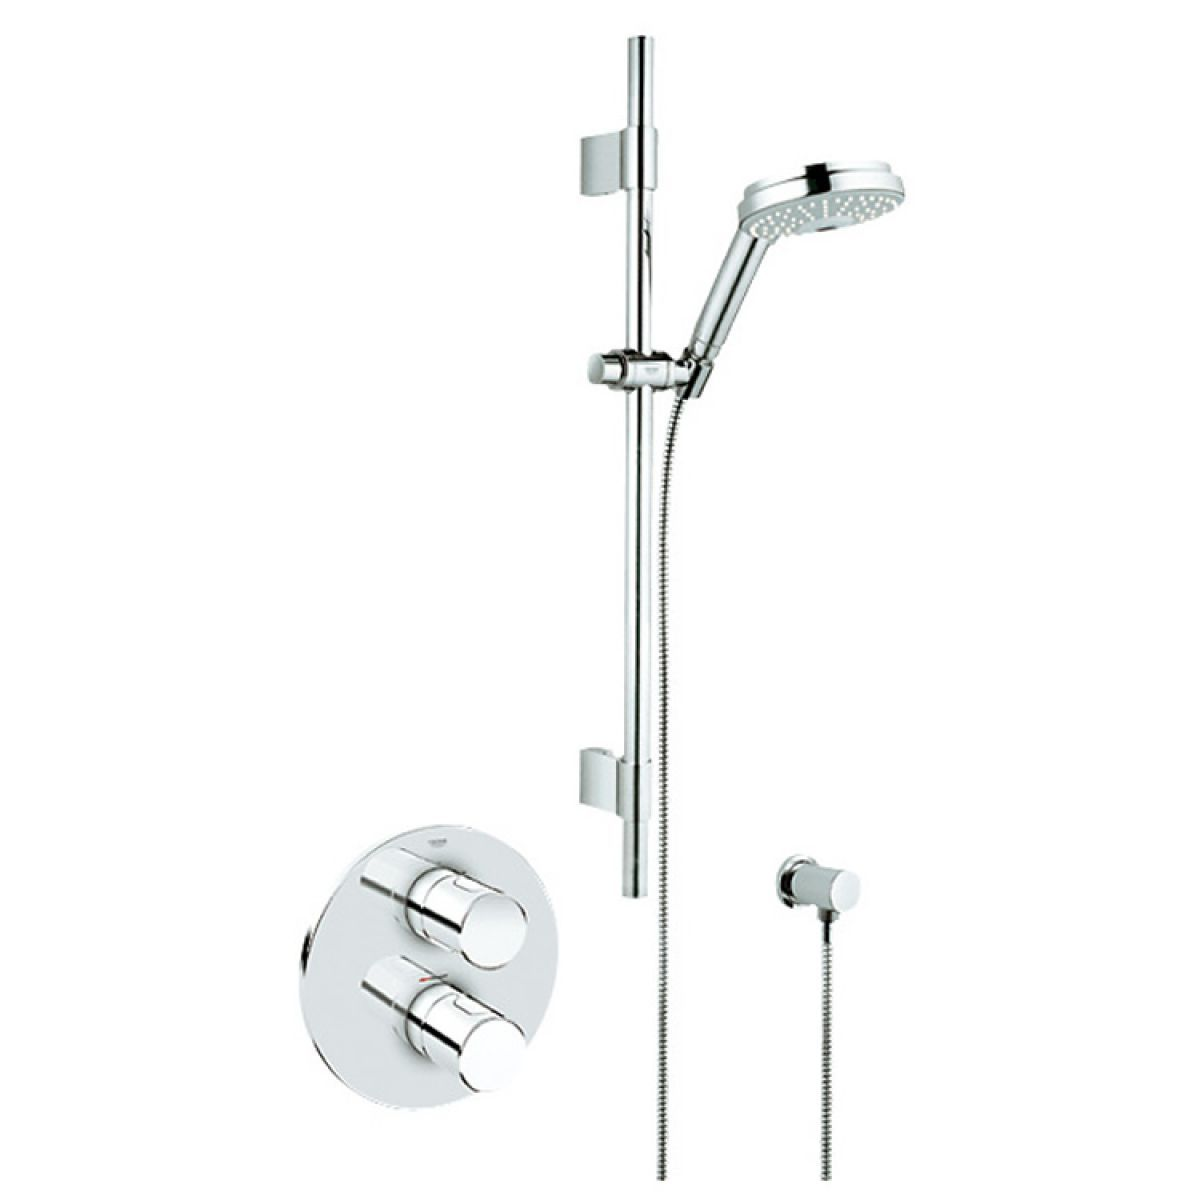 Grohe Grohmaster G3000 Cosmo BIV Concealed Shower Kit | Shower kits ...